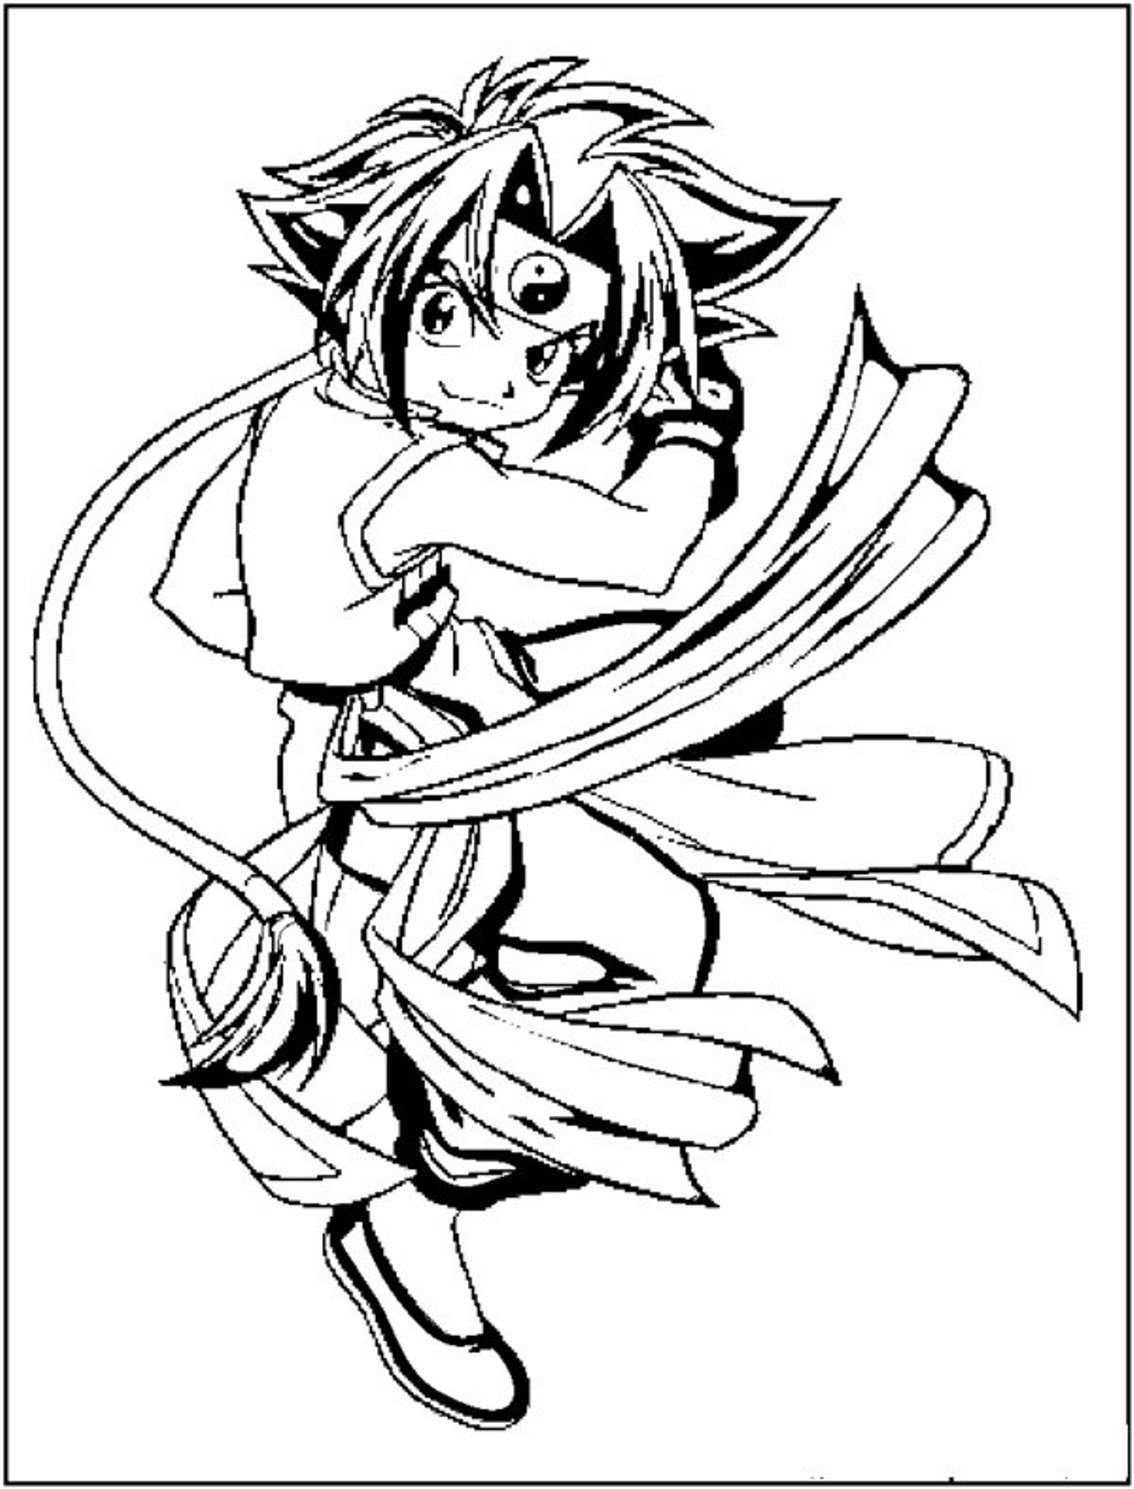 27 Marvelous Photo Of Beyblade Coloring Pages Entitlementtrap Com Cartoon Coloring Pages Dolphin Coloring Pages Coloring Pages For Kids